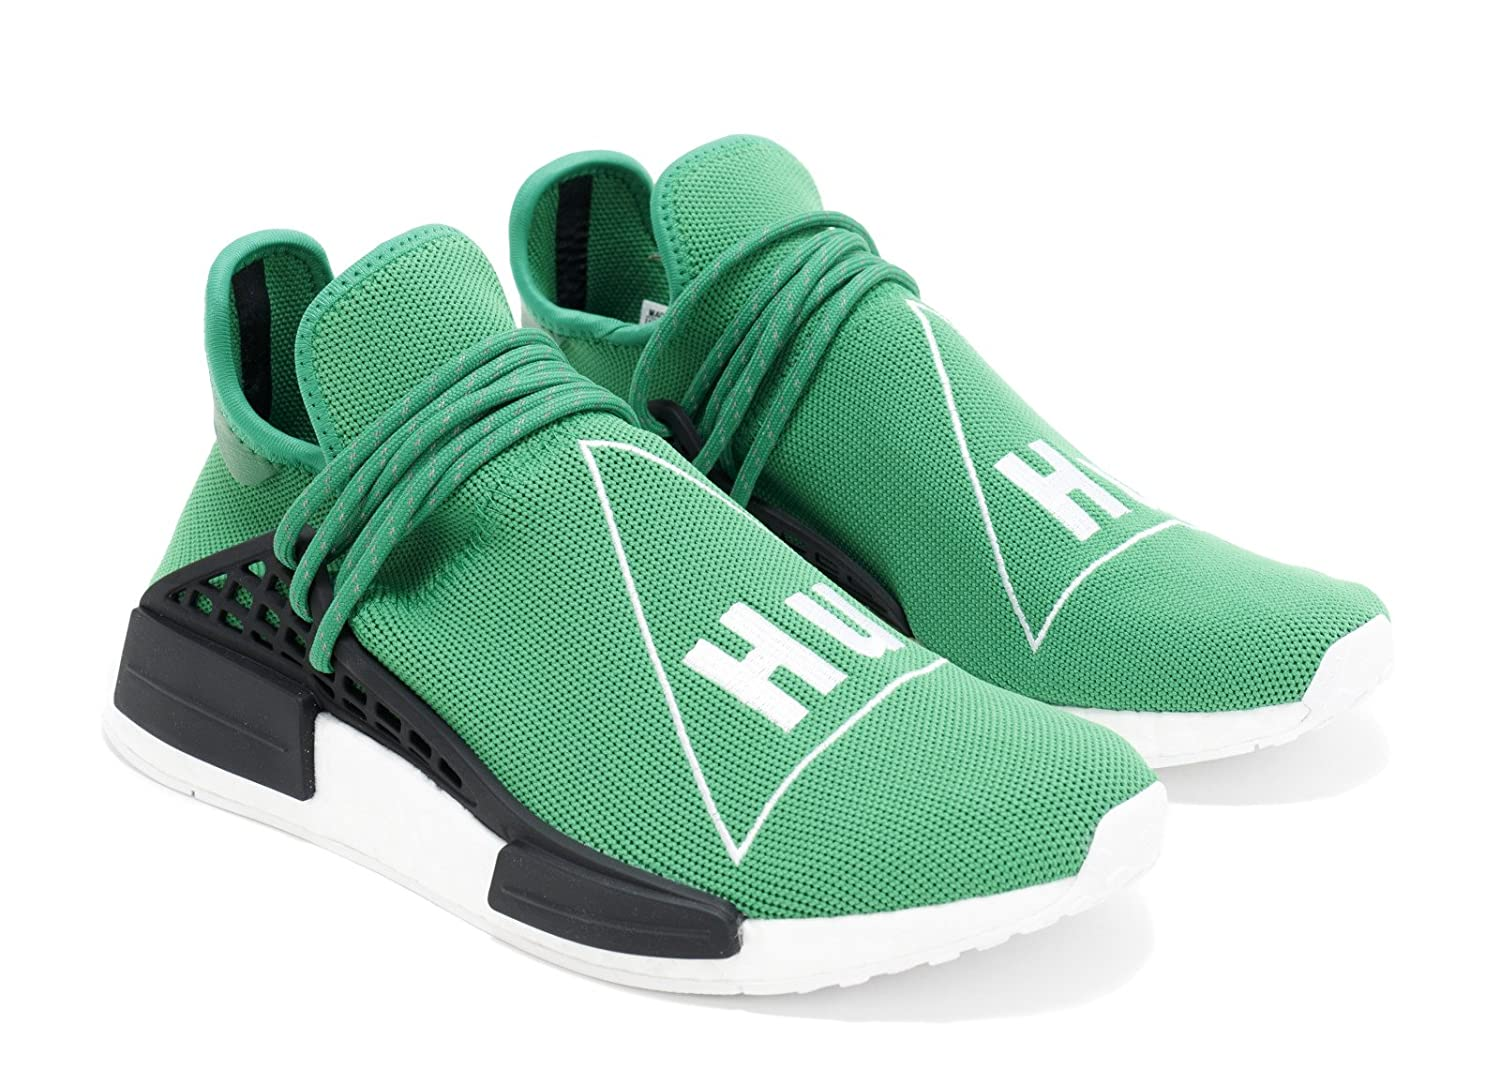 4ecb3b4a95949 adidas NMD Human Race Trail Pharrell Williams Multi Trainer  Amazon.co.uk   Shoes   Bags